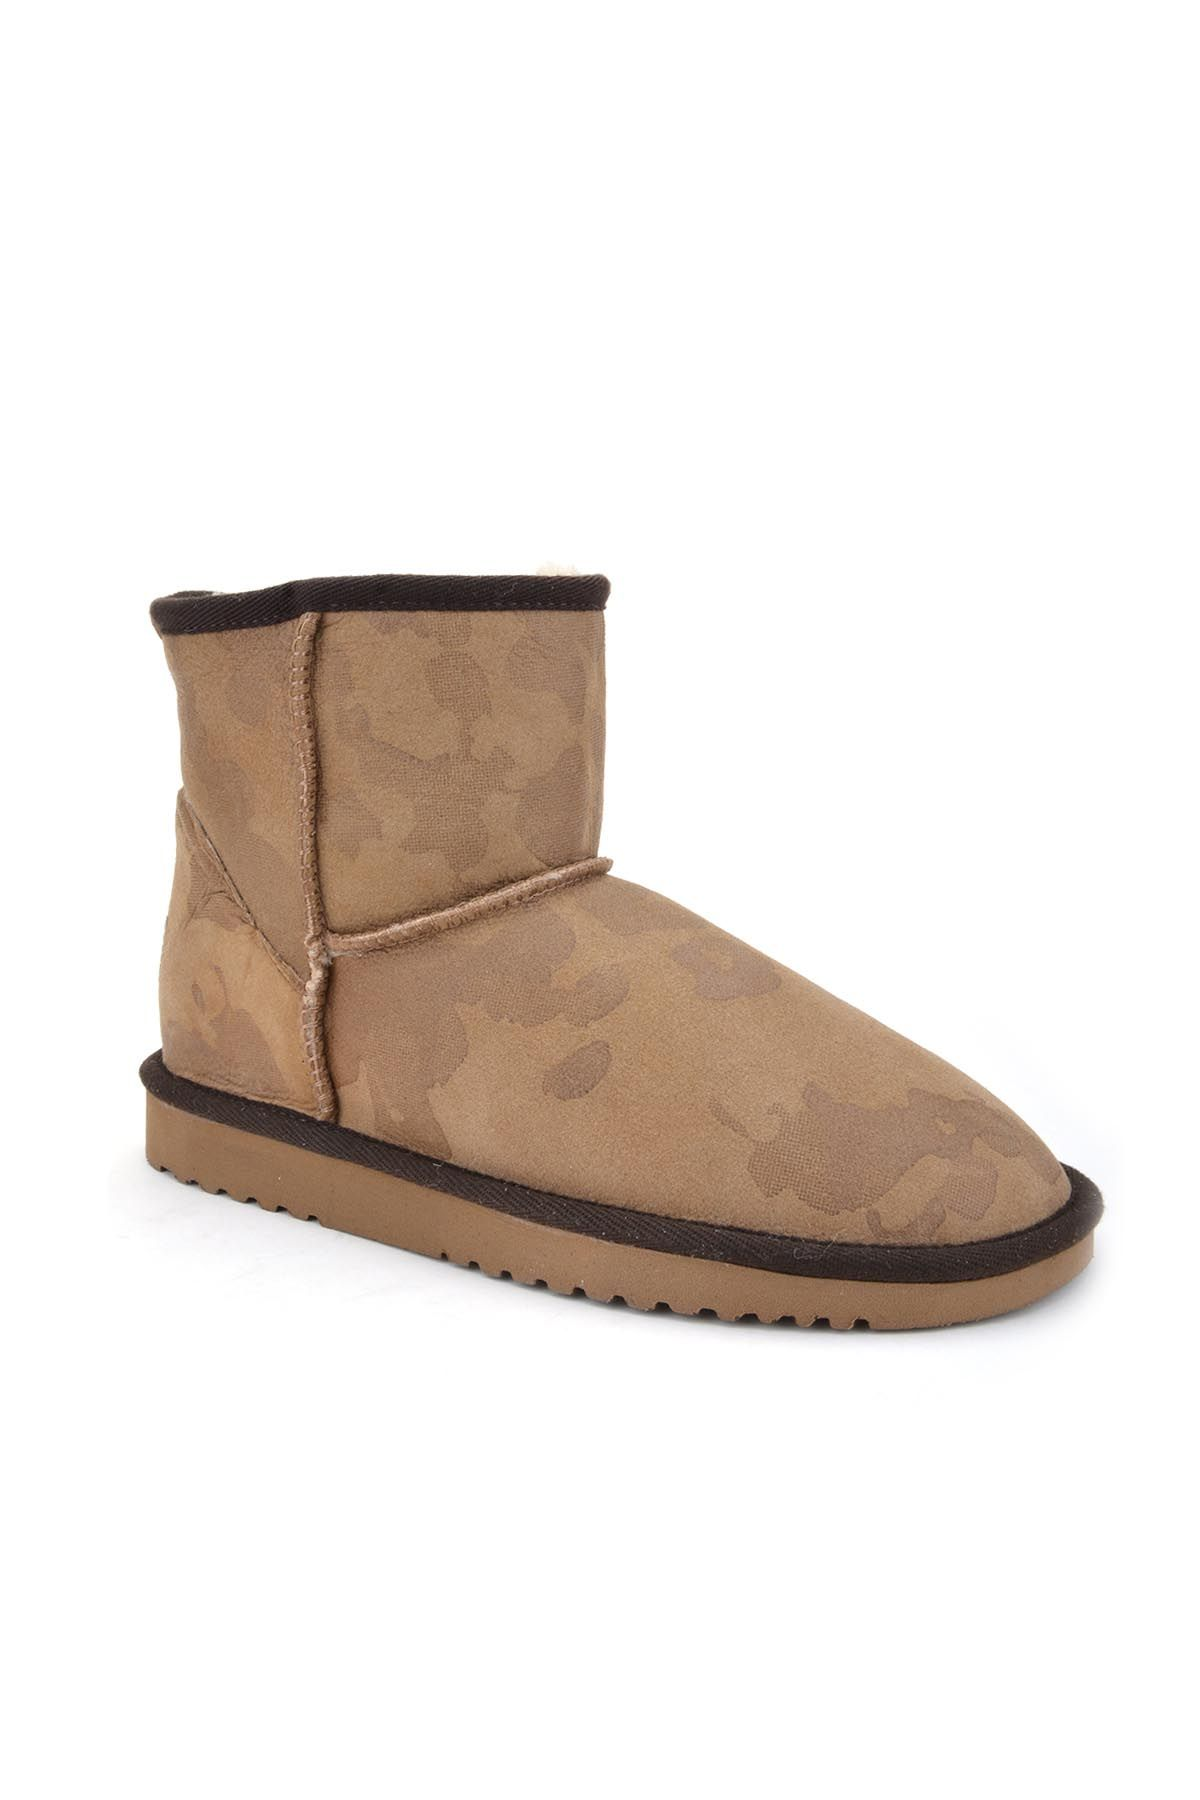 Cool Moon Women Boots From Genuine Sheepskin Fur 980326 Sand-colored